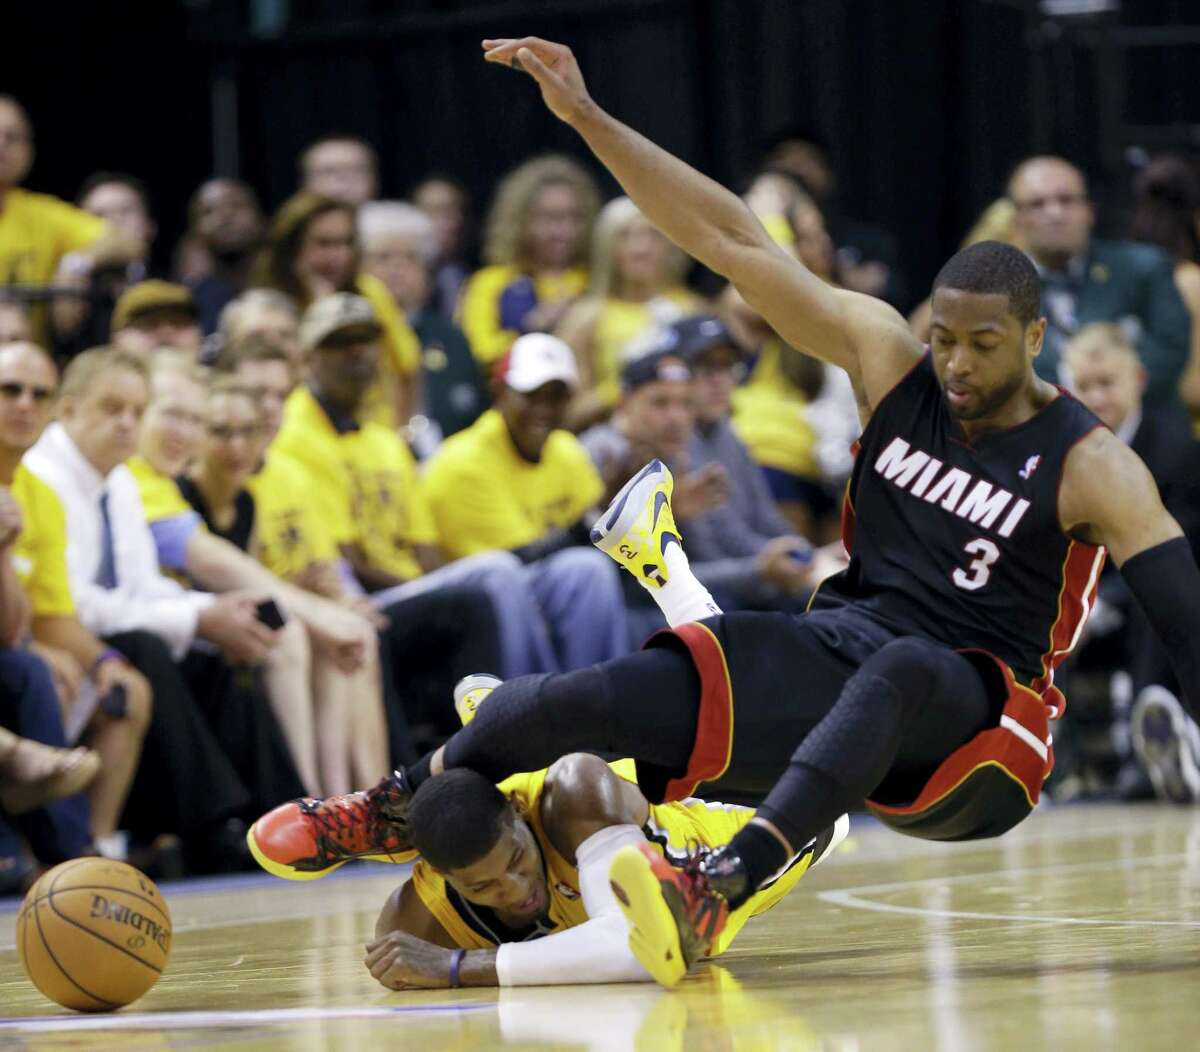 In this May 20, 2014 photo, Indiana Pacers forward Paul George lies on the floor as the knee of Miami Heat guard Dwyane Wade (3) makes contact with his head as they went for a loose ball during the fourth quarter of Game 2 of the NBA basketball Eastern Conference finals in Indianapolis.